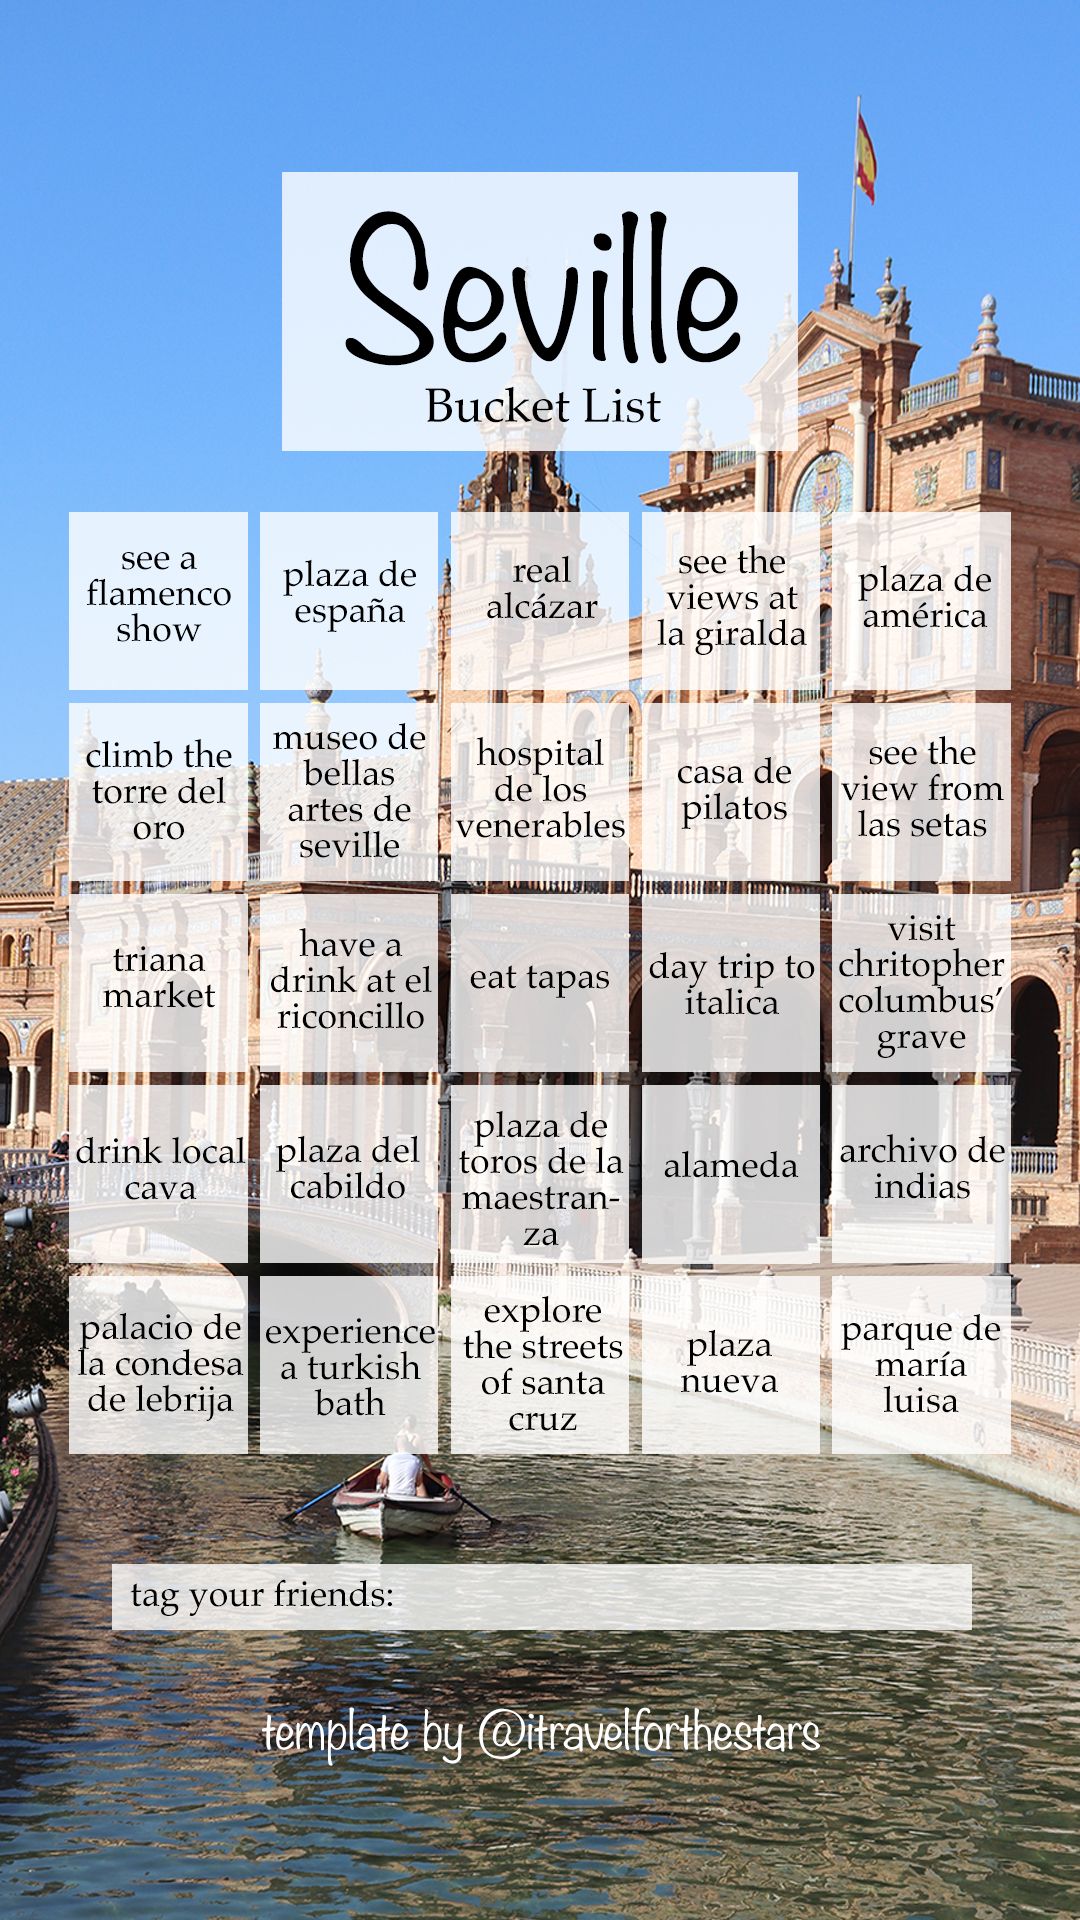 Seville Bucket List for Instagram